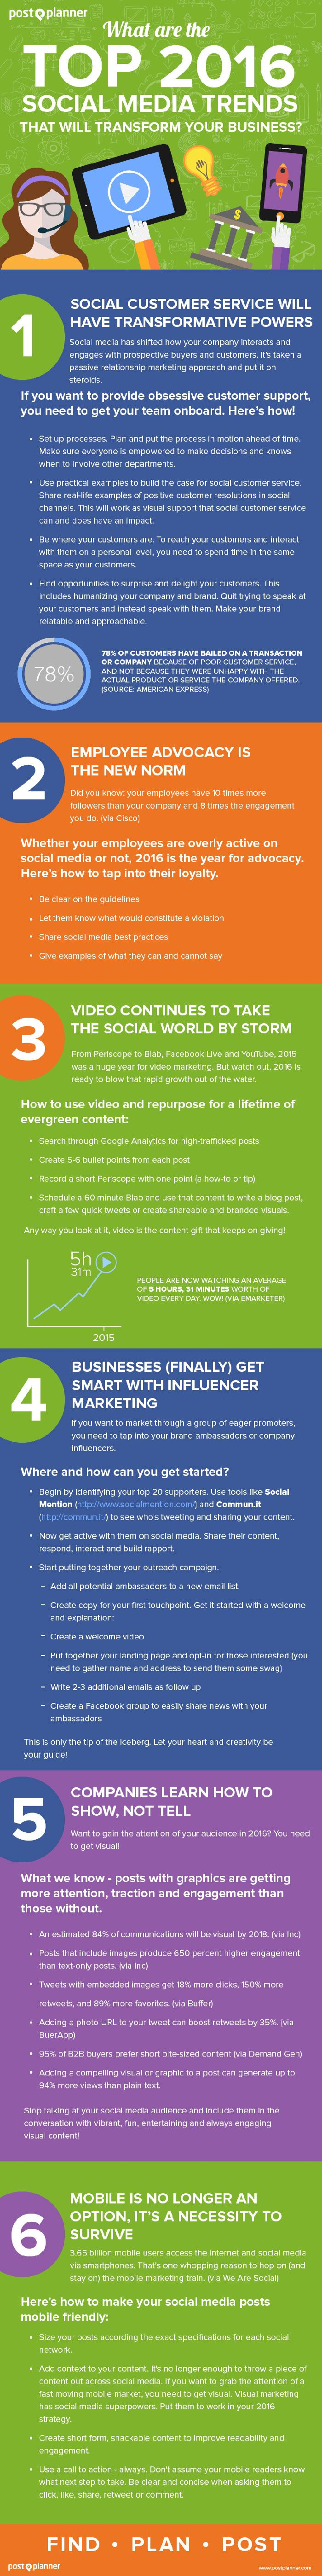 What Are The Top 2016 Social Media Trends That Will Transform Your Business? - #infographic